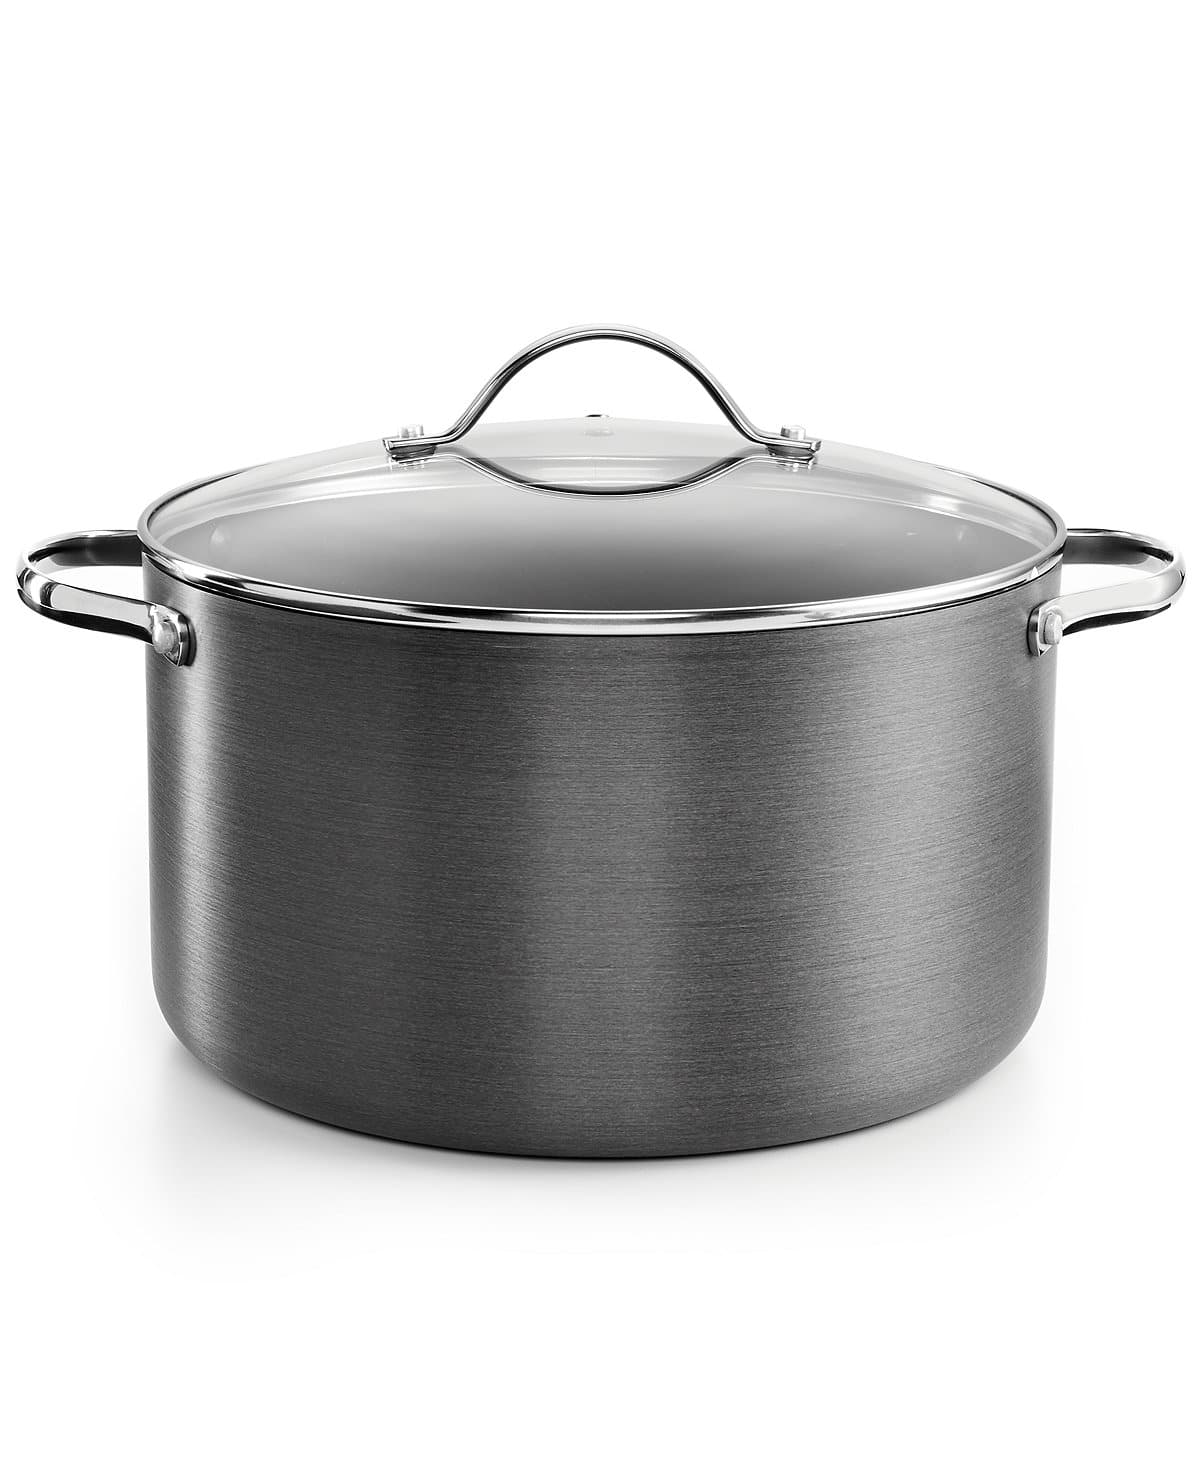 Tools of the Trade: Hard-Anodized 8-Qt. Casserole w/ Lid $10 after rebate, 3-Pc Fry Pan Set $10 after rebate, More + free ship on $25+